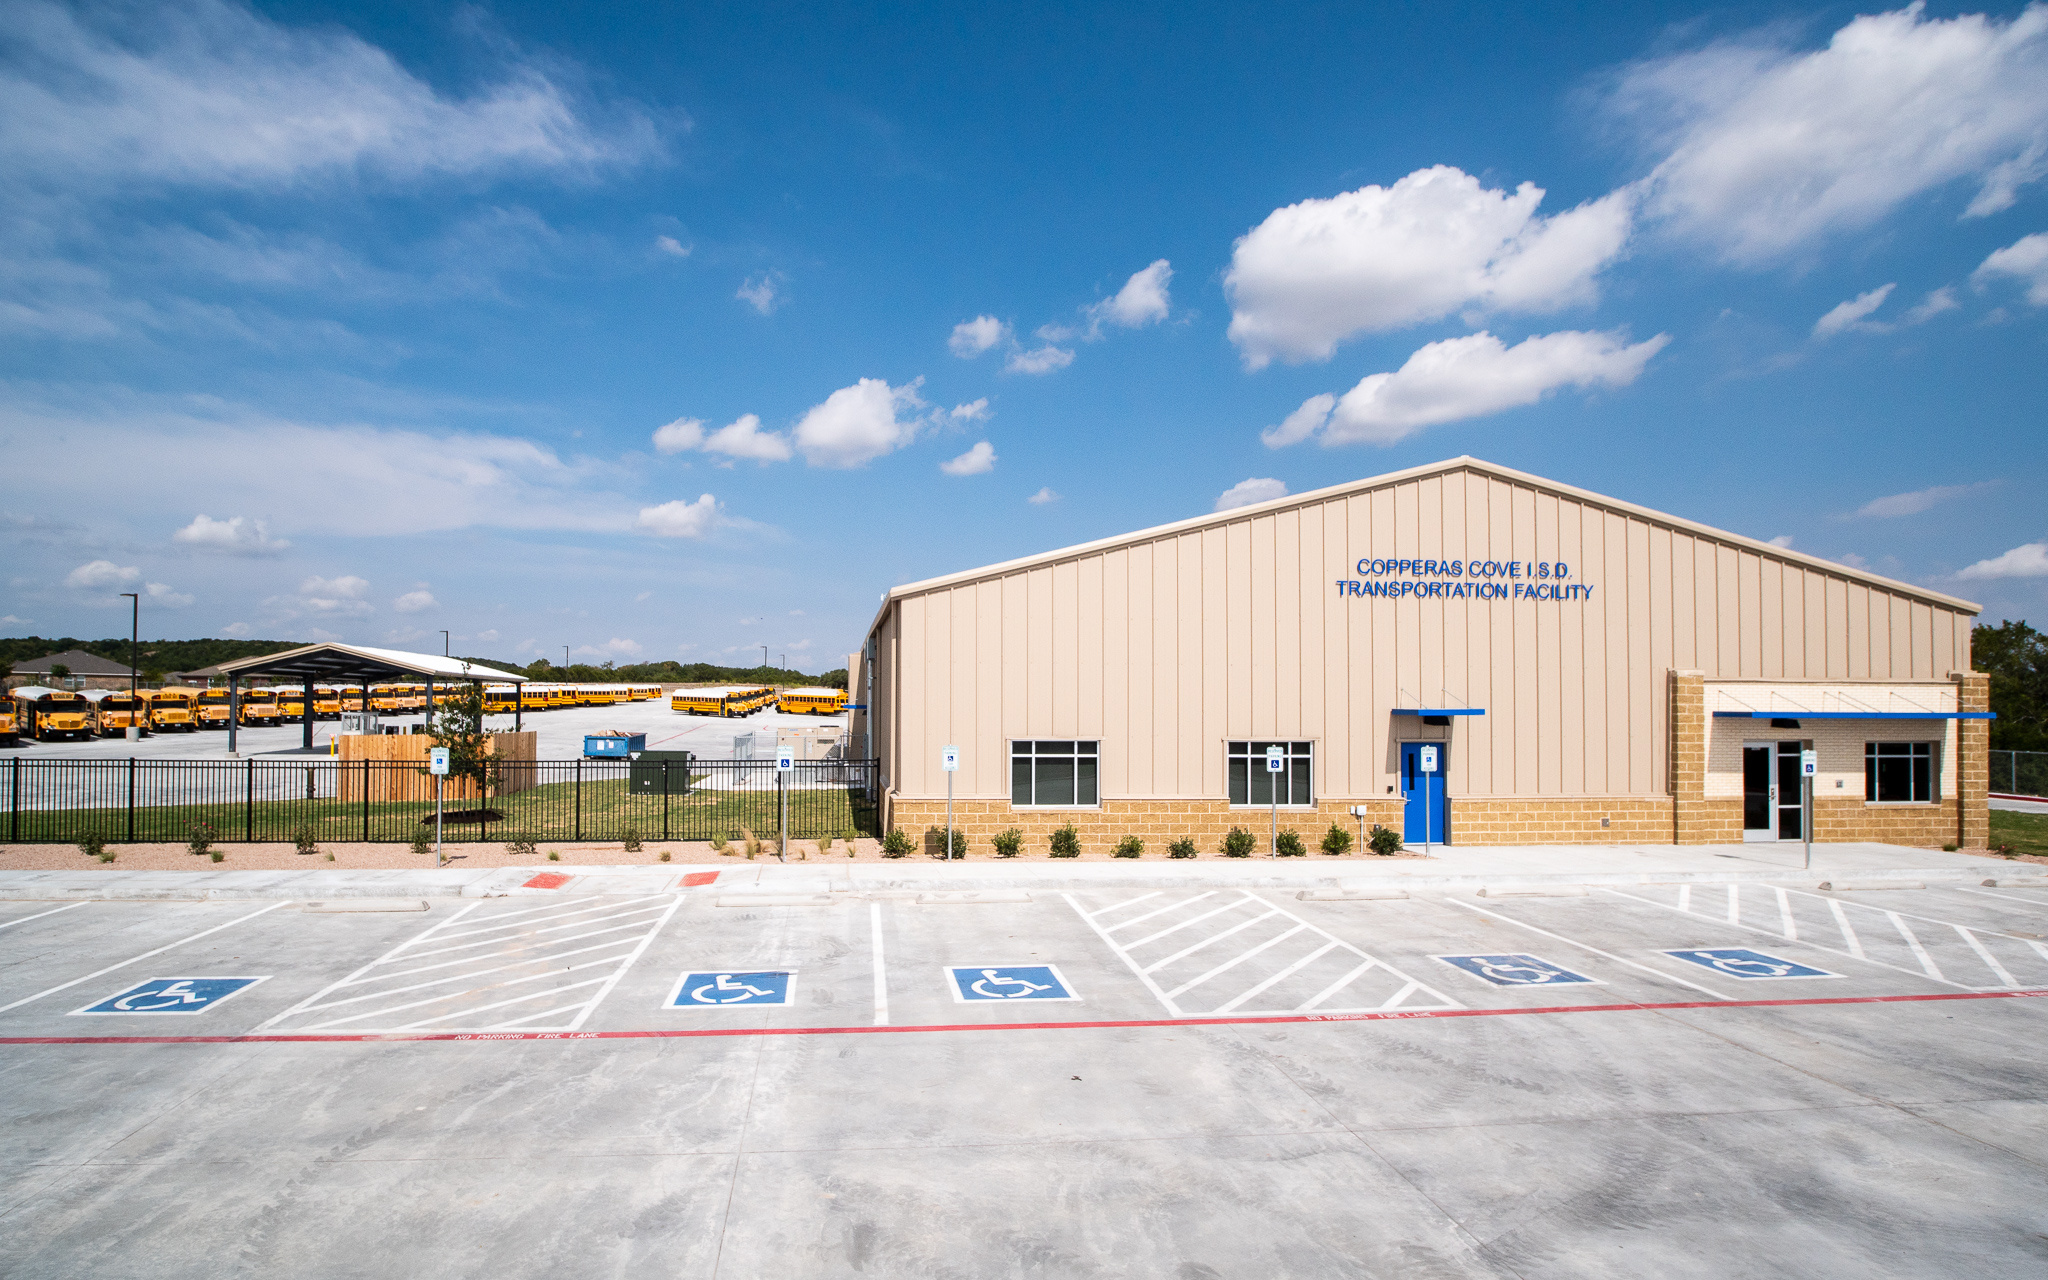 Copperas cove isd transportation facility  July 2018